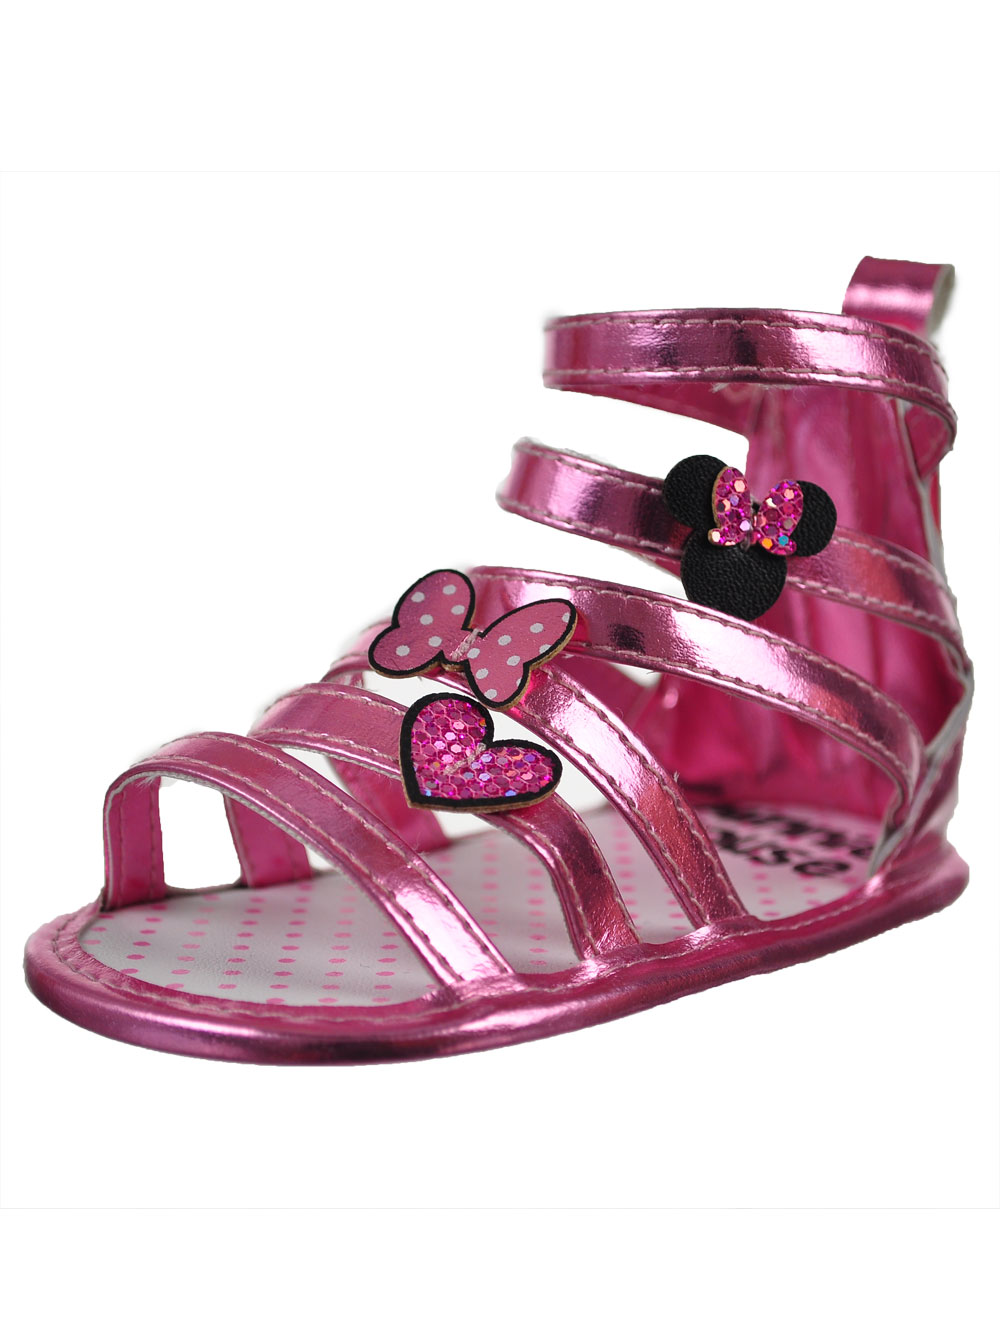 Disney Minnie Mouse Baby Girls' Sandal Booties